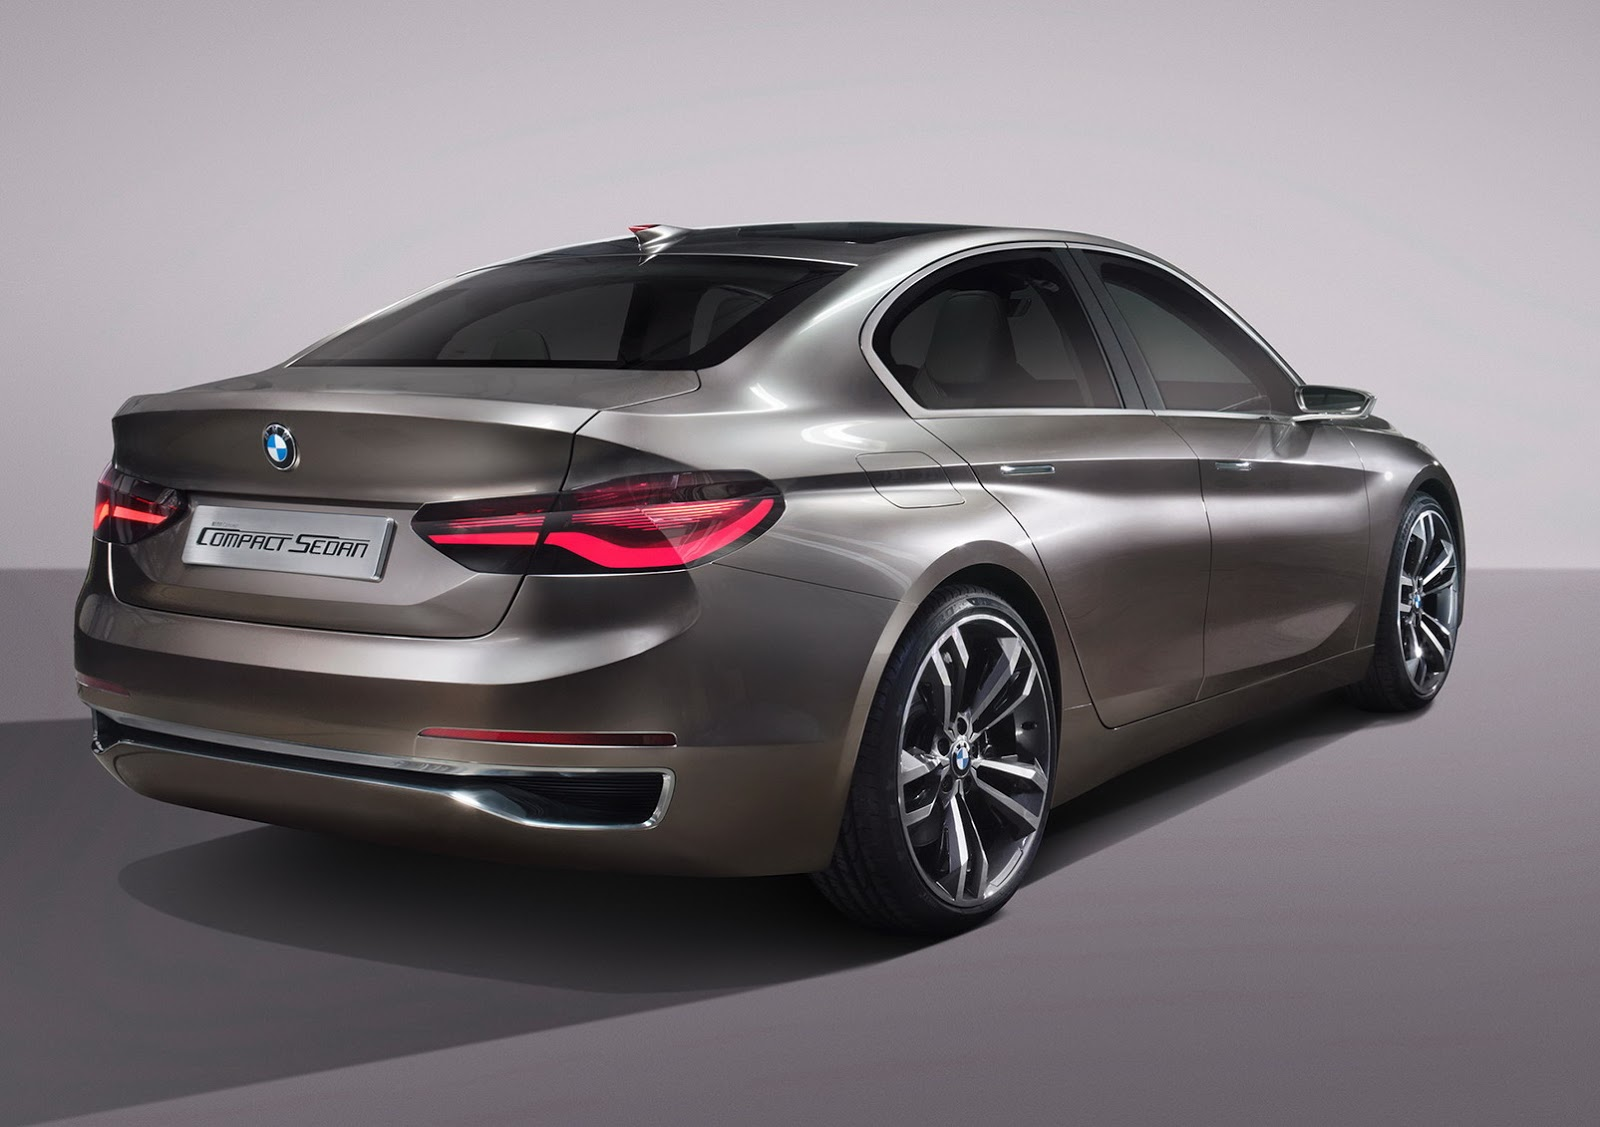 Bmw Concept Compact Sedan Previews 1 Or 2 Series Sedan